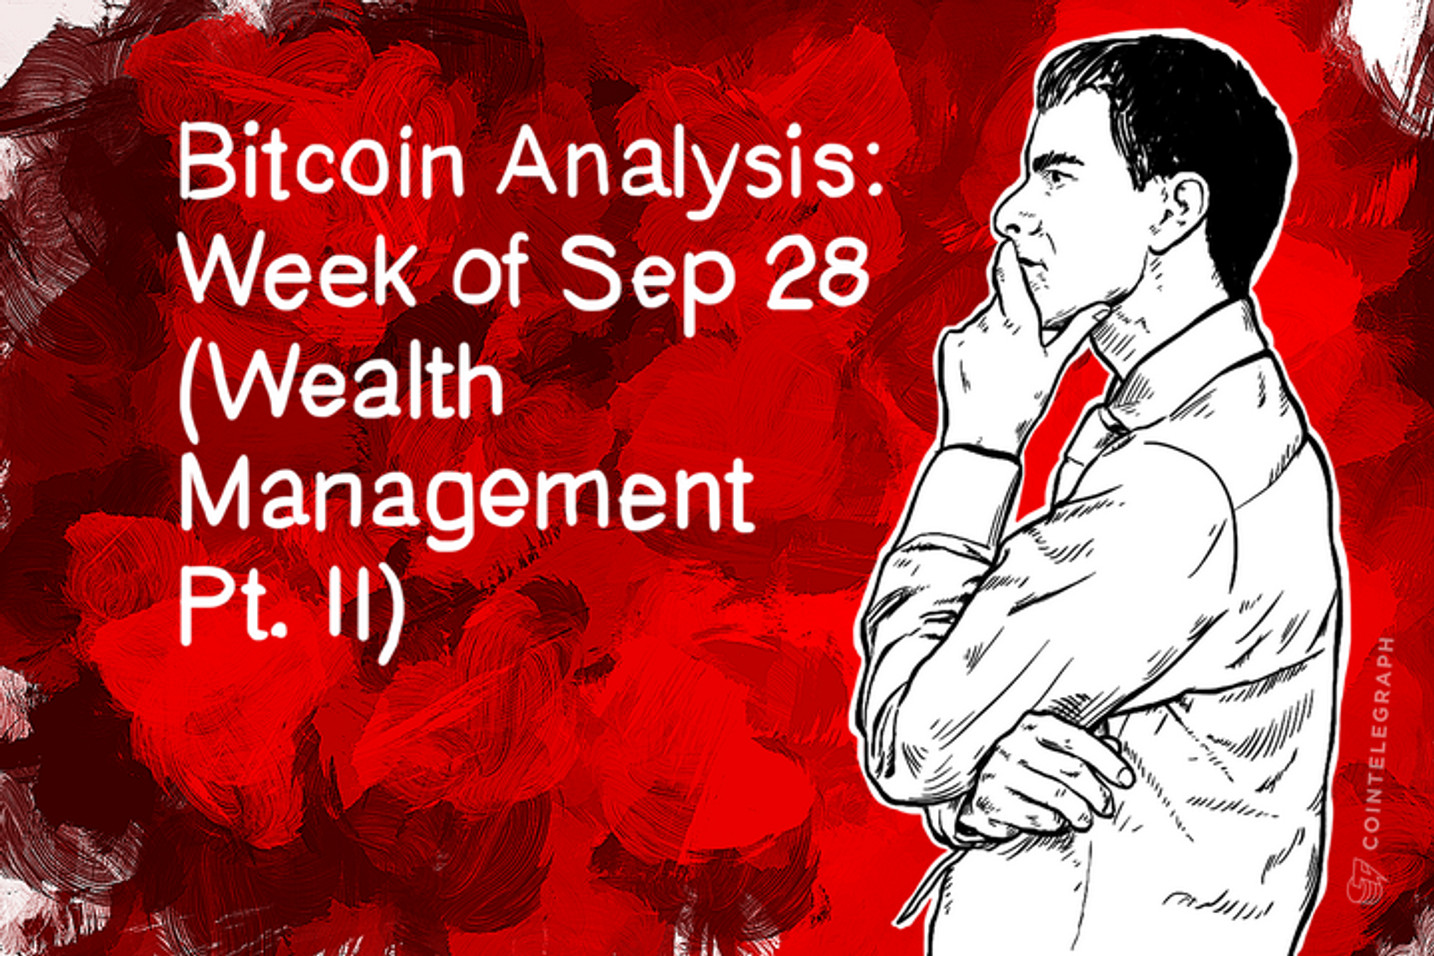 Bitcoin Analysis: Week of Sep 28 (Wealth Management Pt. II)